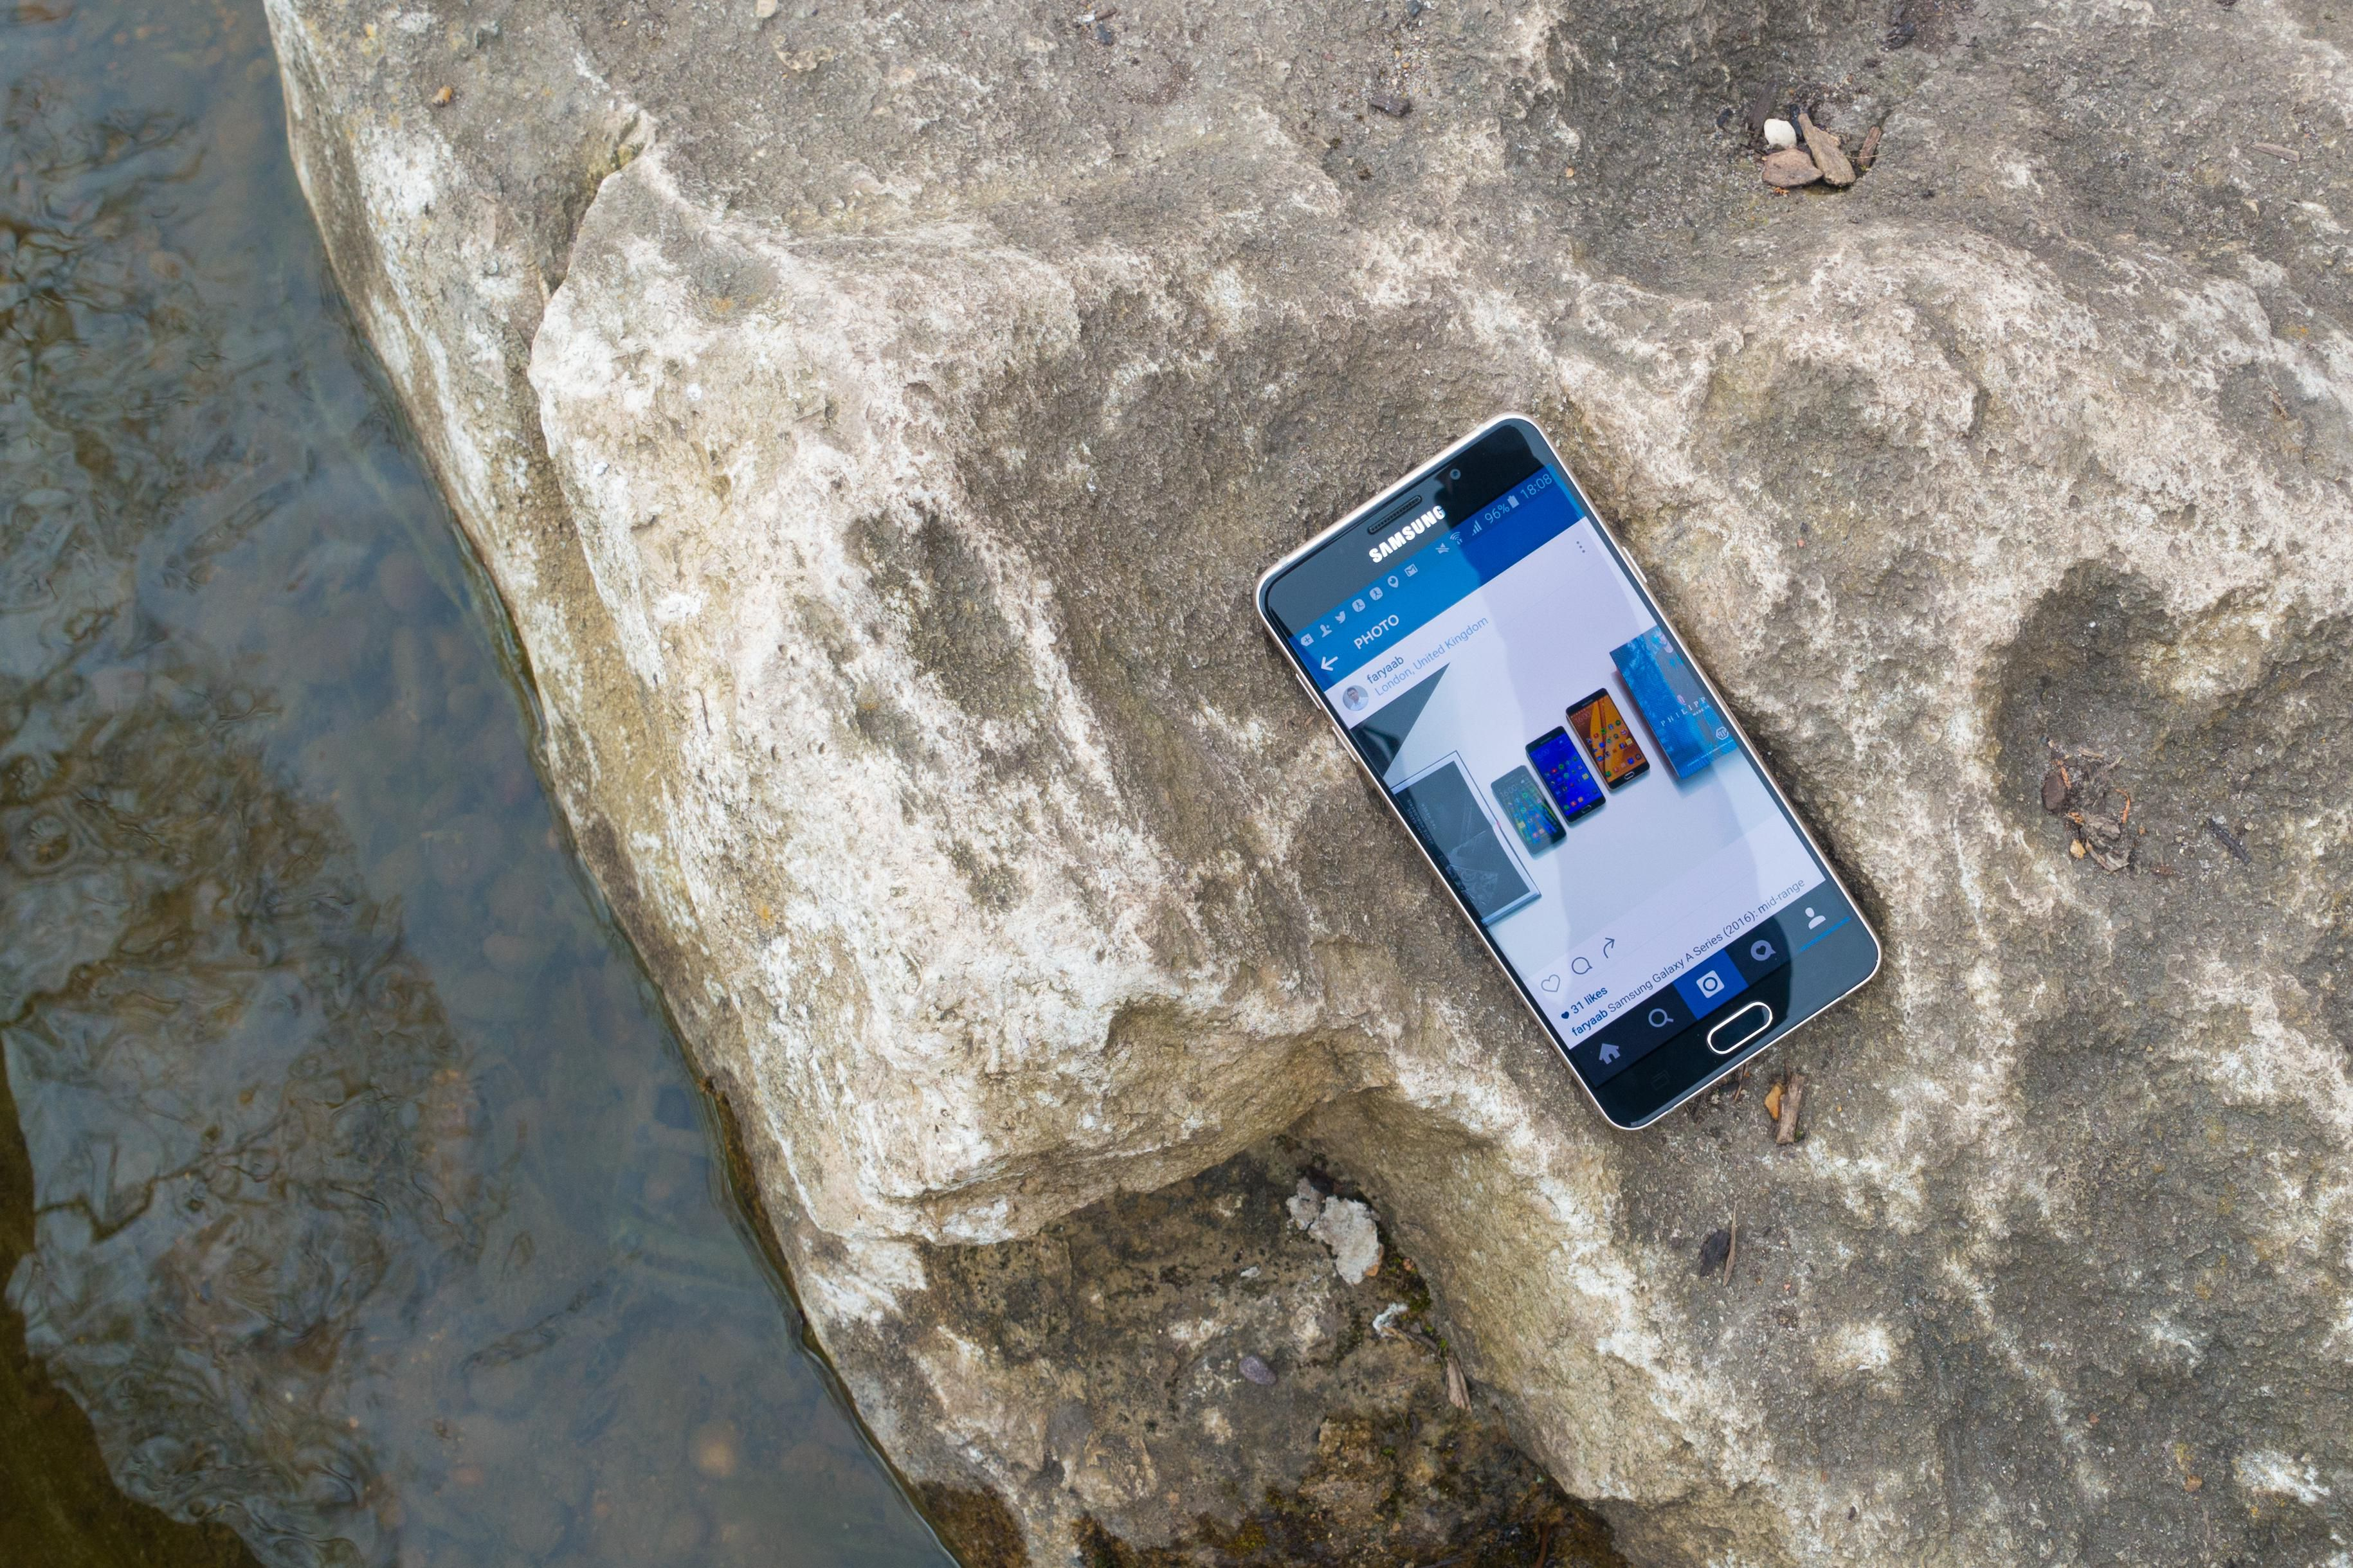 The Galaxy A3 Doesnt Come With Dual Band Wi Fi Support And While A5 A7 Do They Are Limited To 80211n Speeds